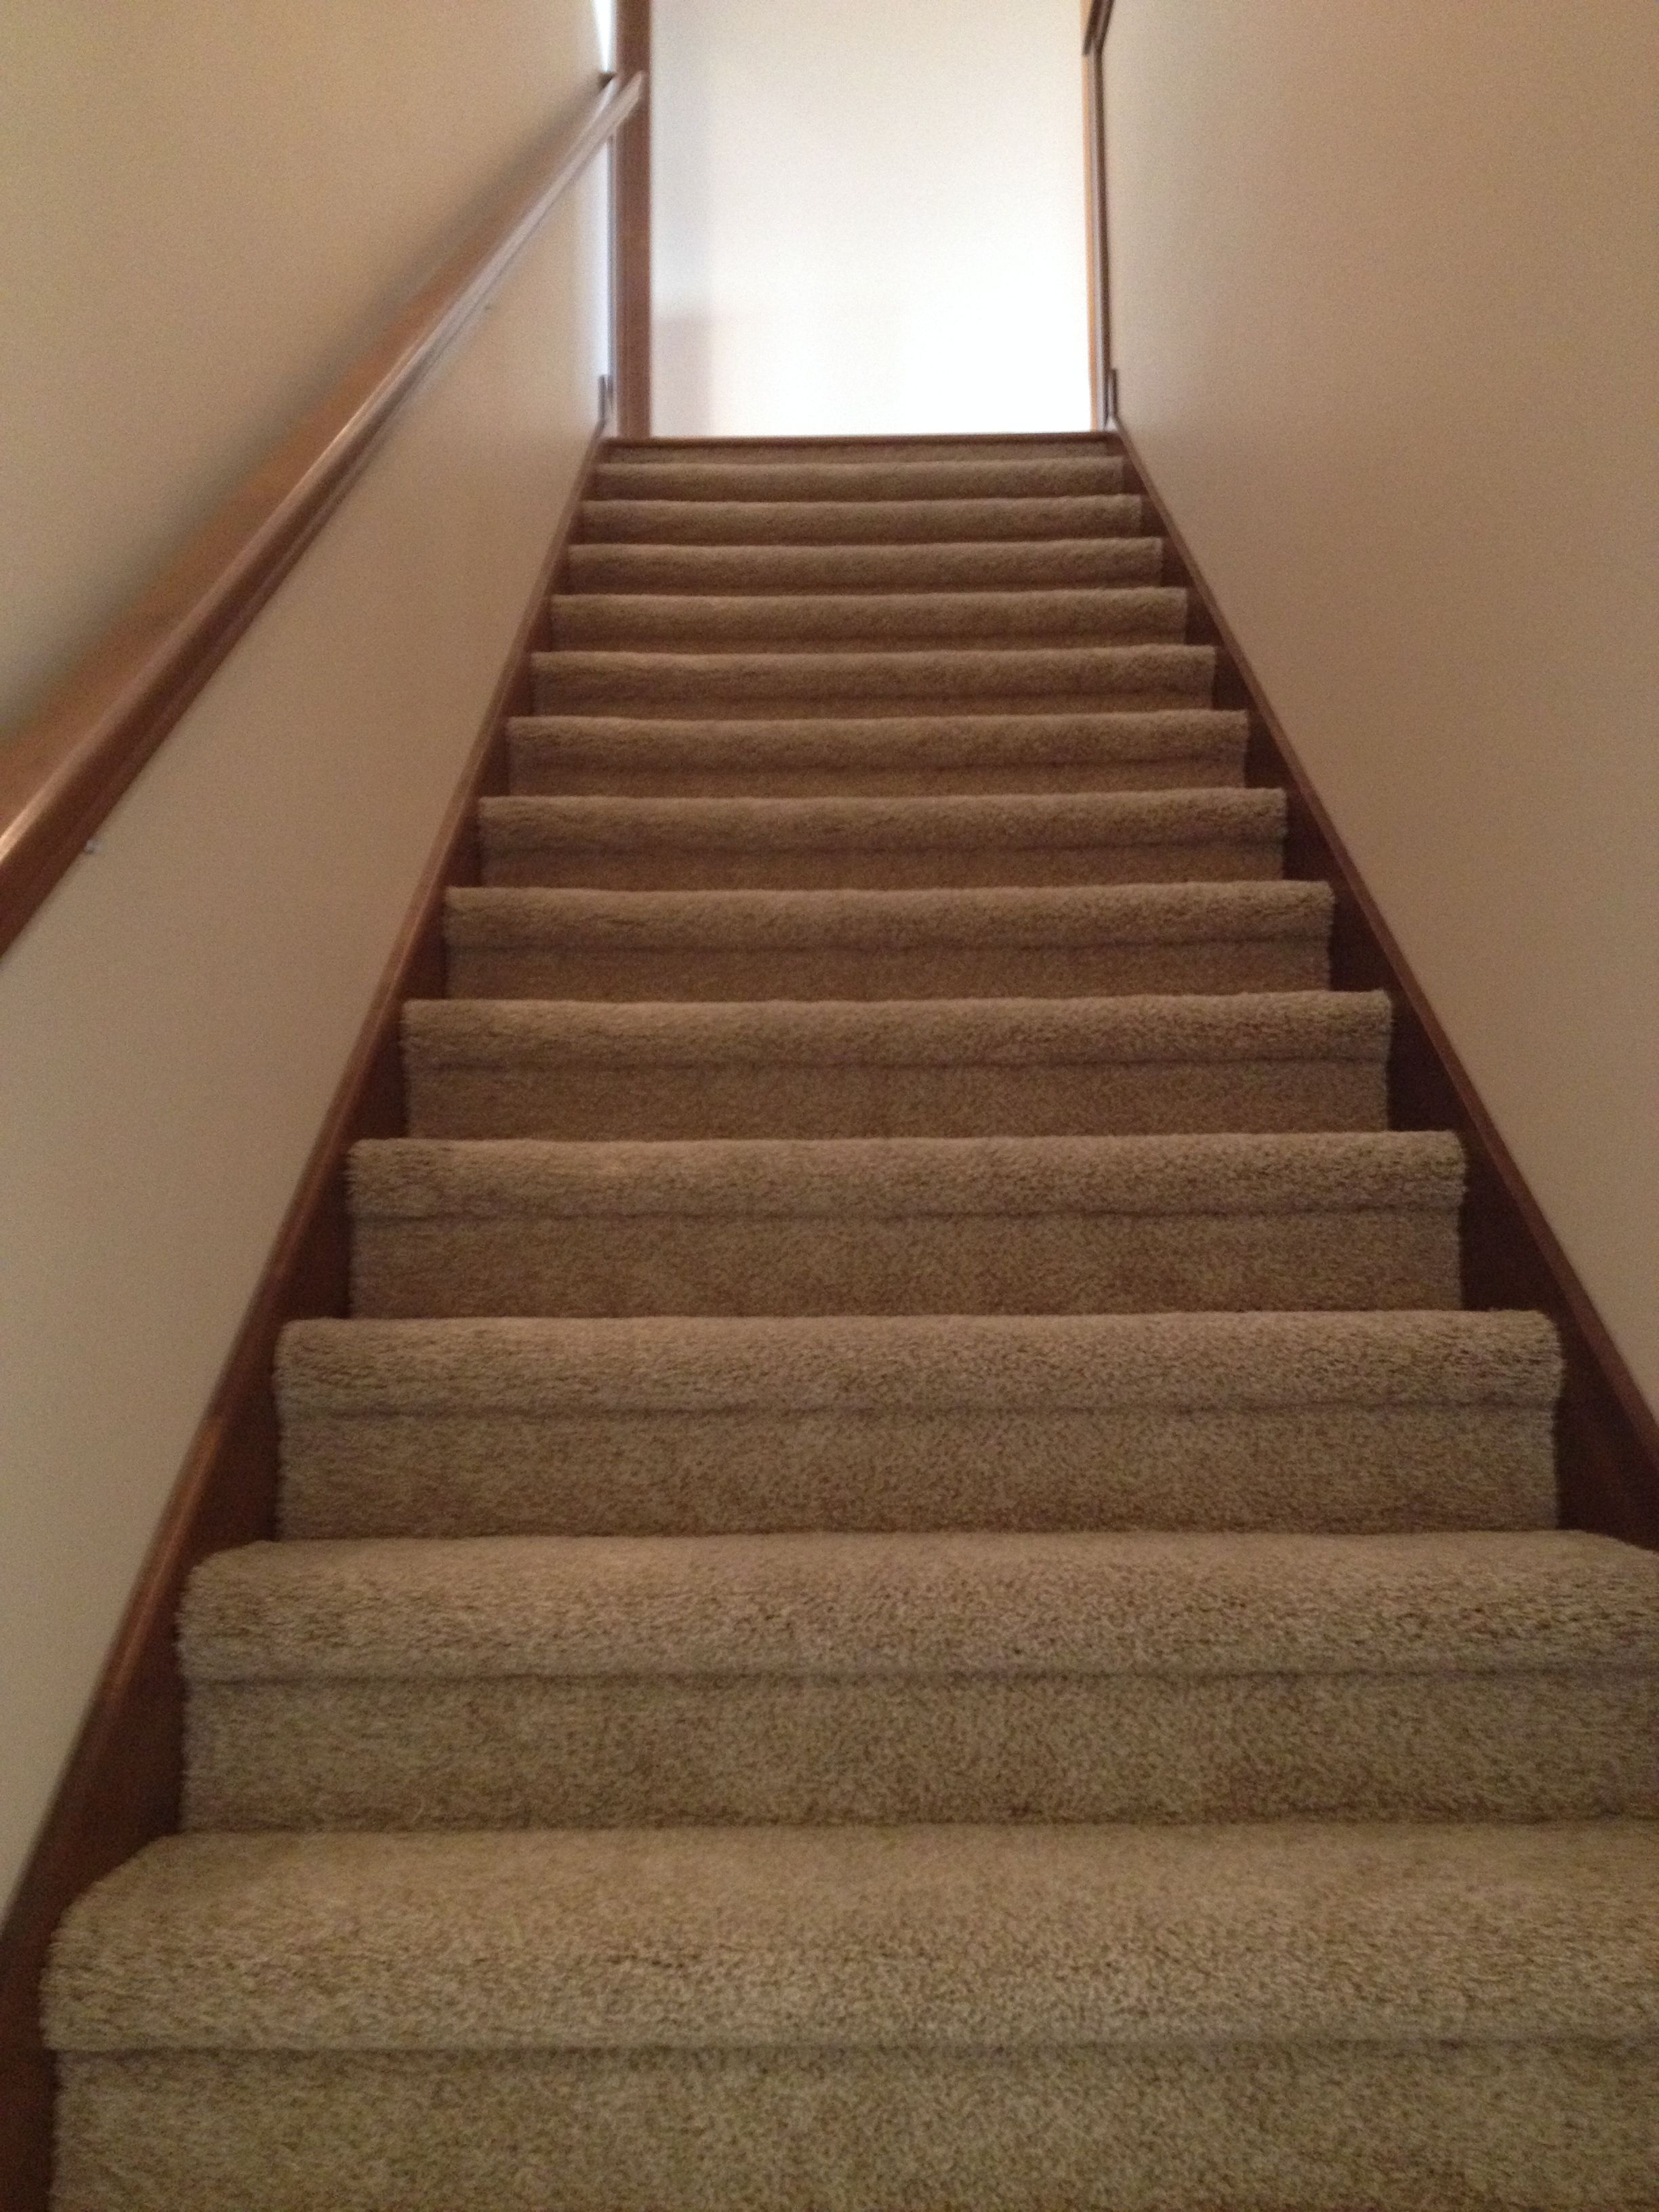 Gerard homes super plush carpet on stairs in a bull nose install design by dennis pinterest - Refurbish stairs budget ...